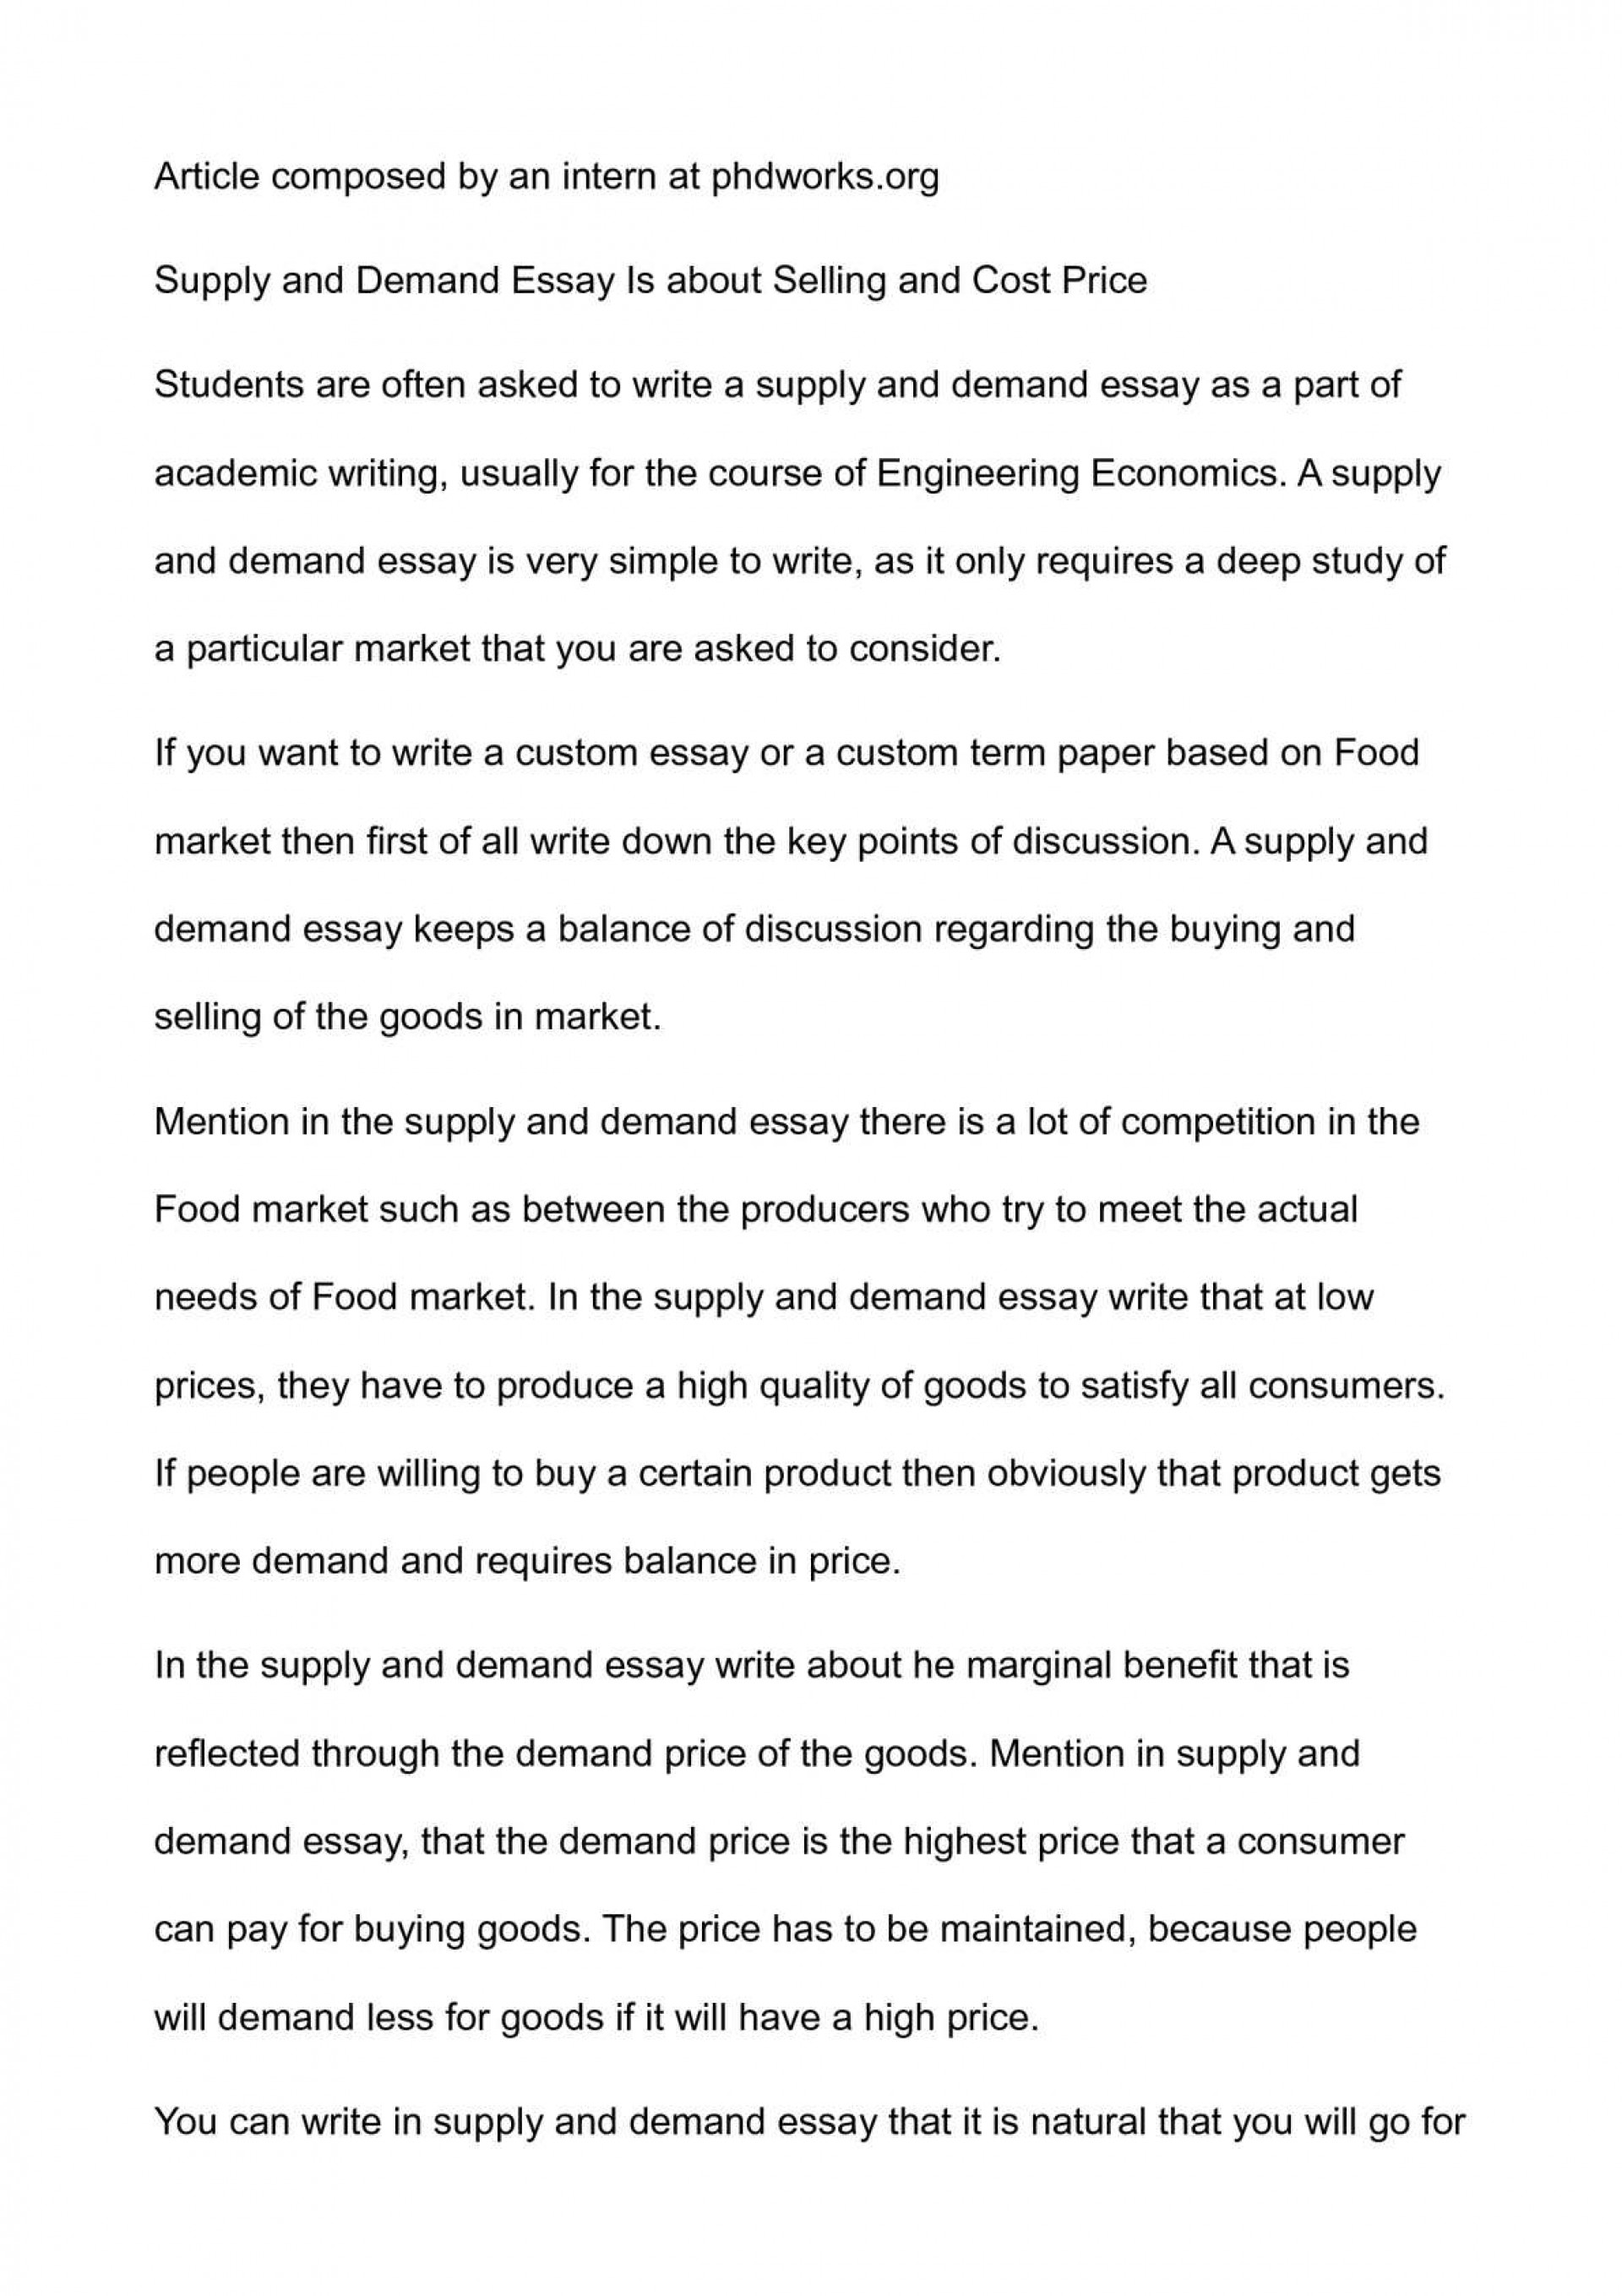 001 Essay Supply P1 Shocking Questions On Chain Management For And Demand Essaysupply Sign Up 1920